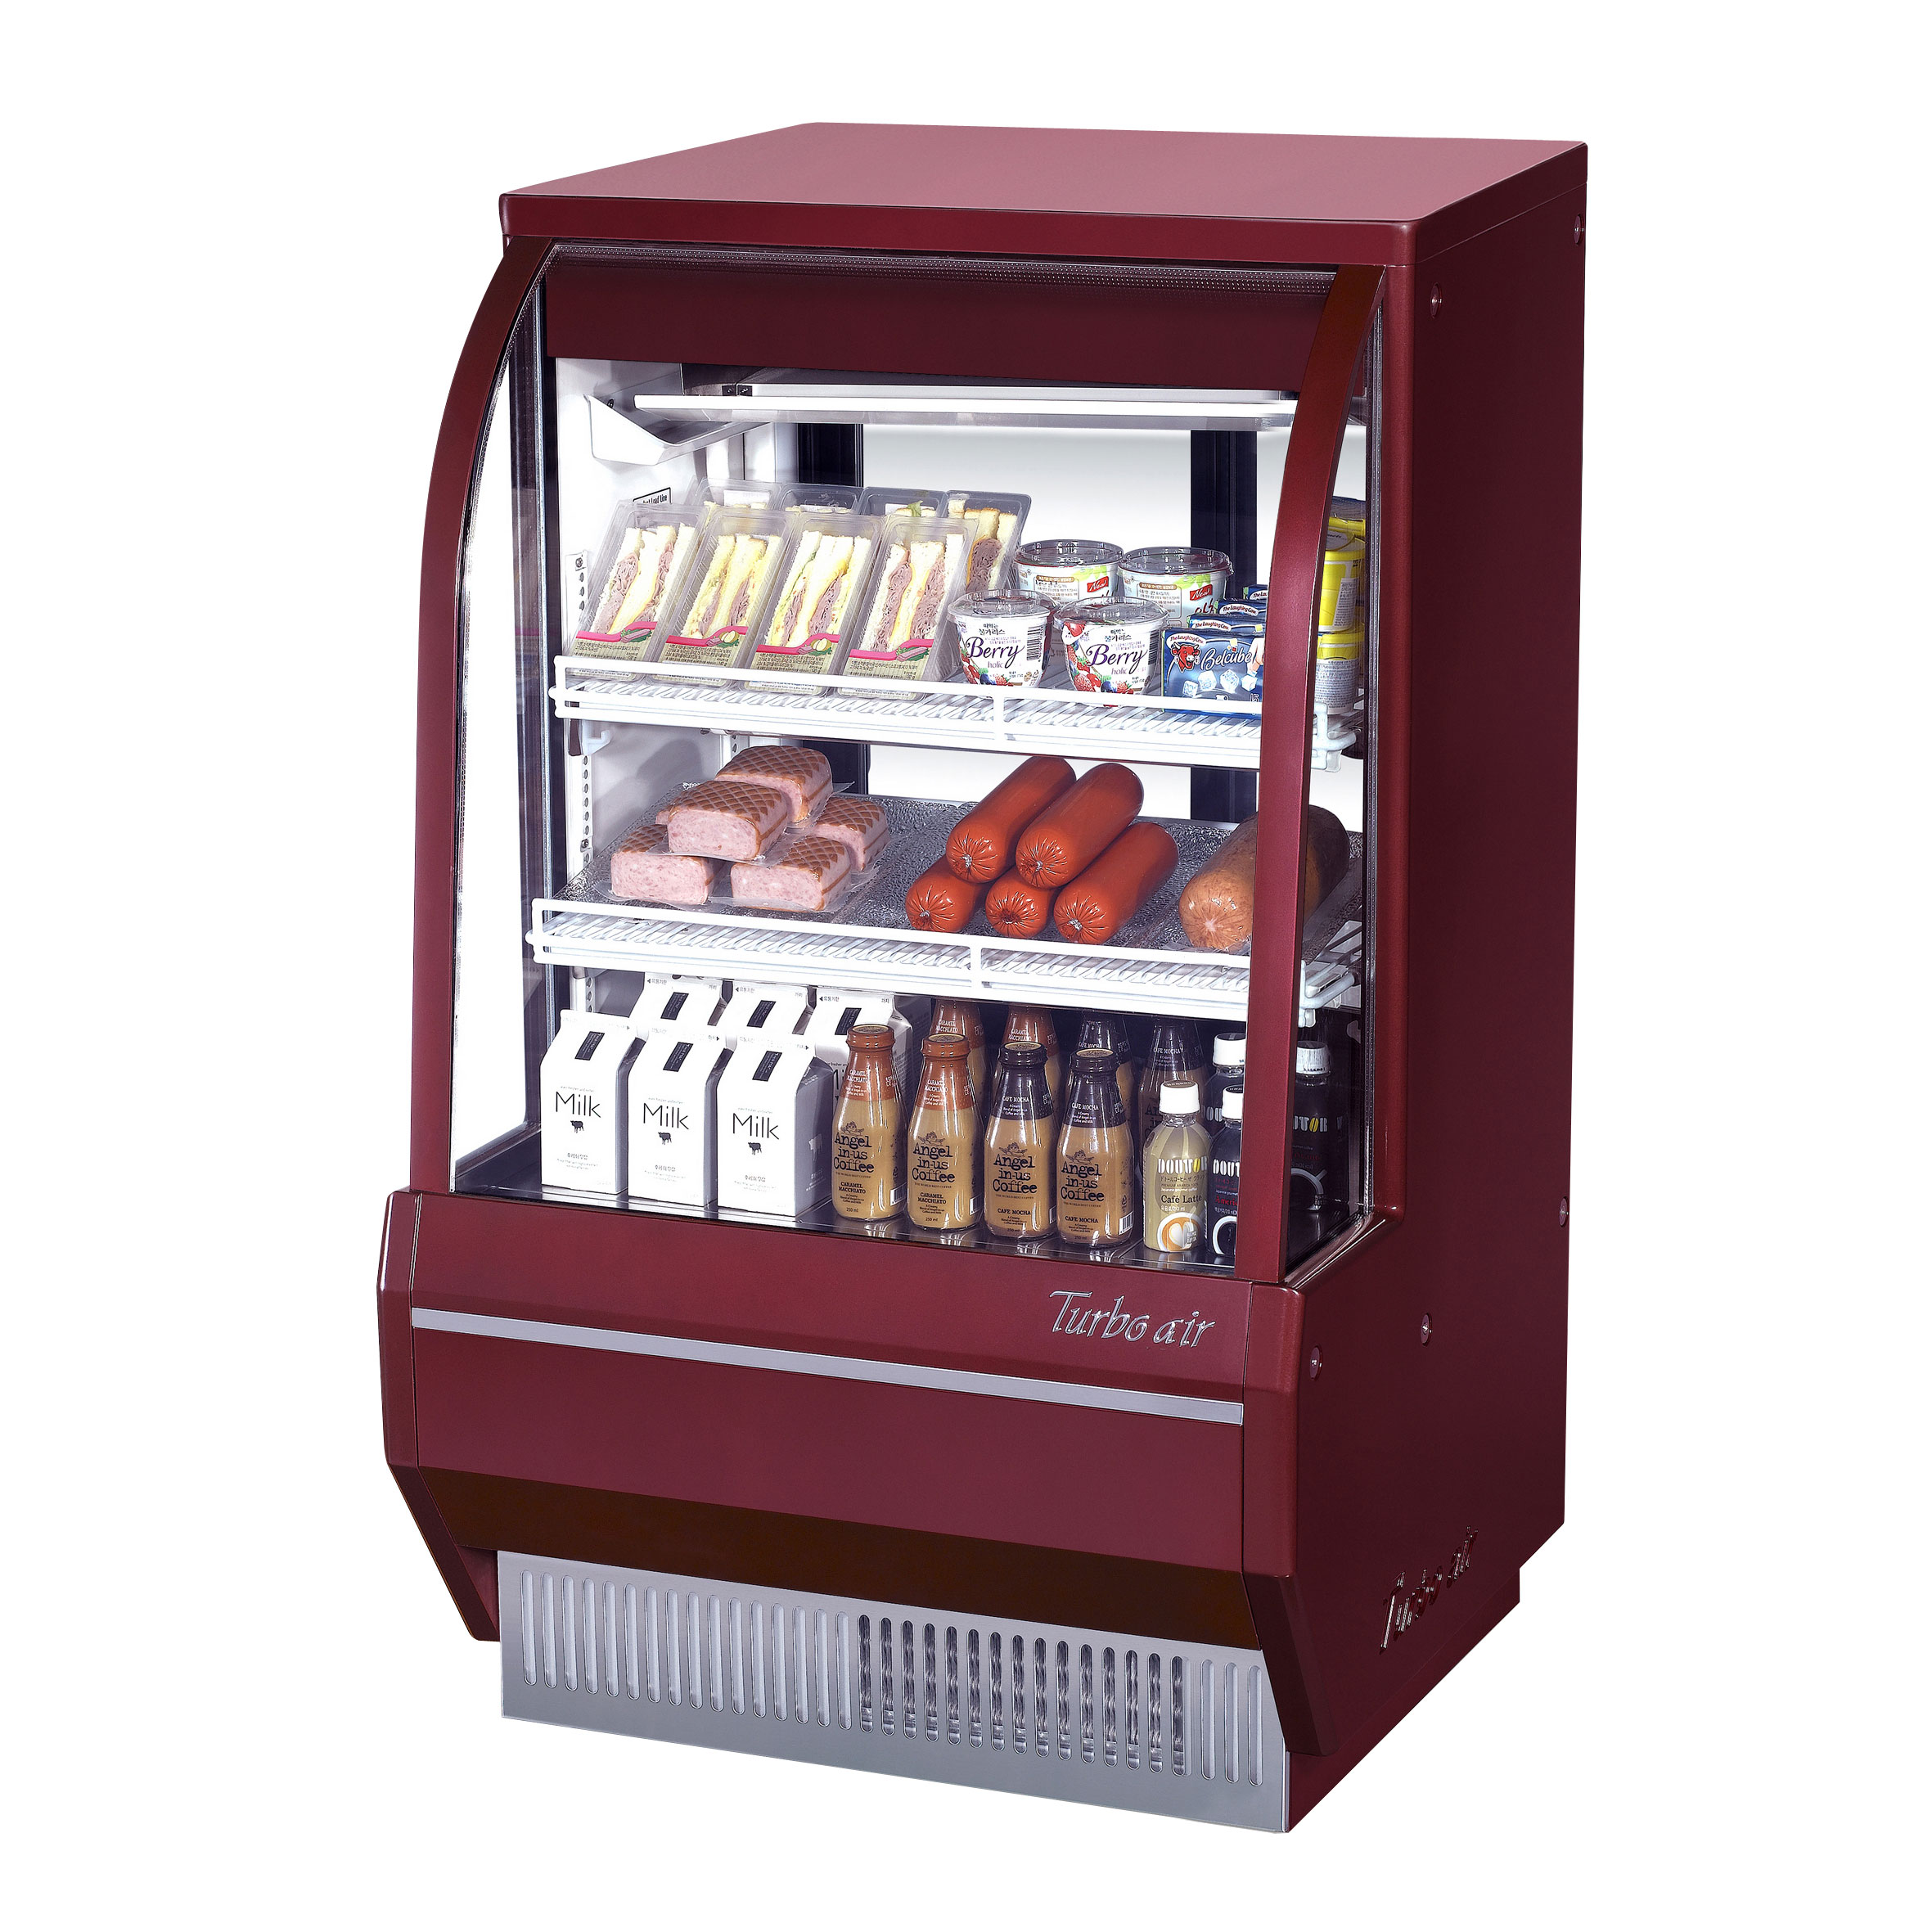 Turbo Air TCDD-36-2-H-R display case, refrigerated deli